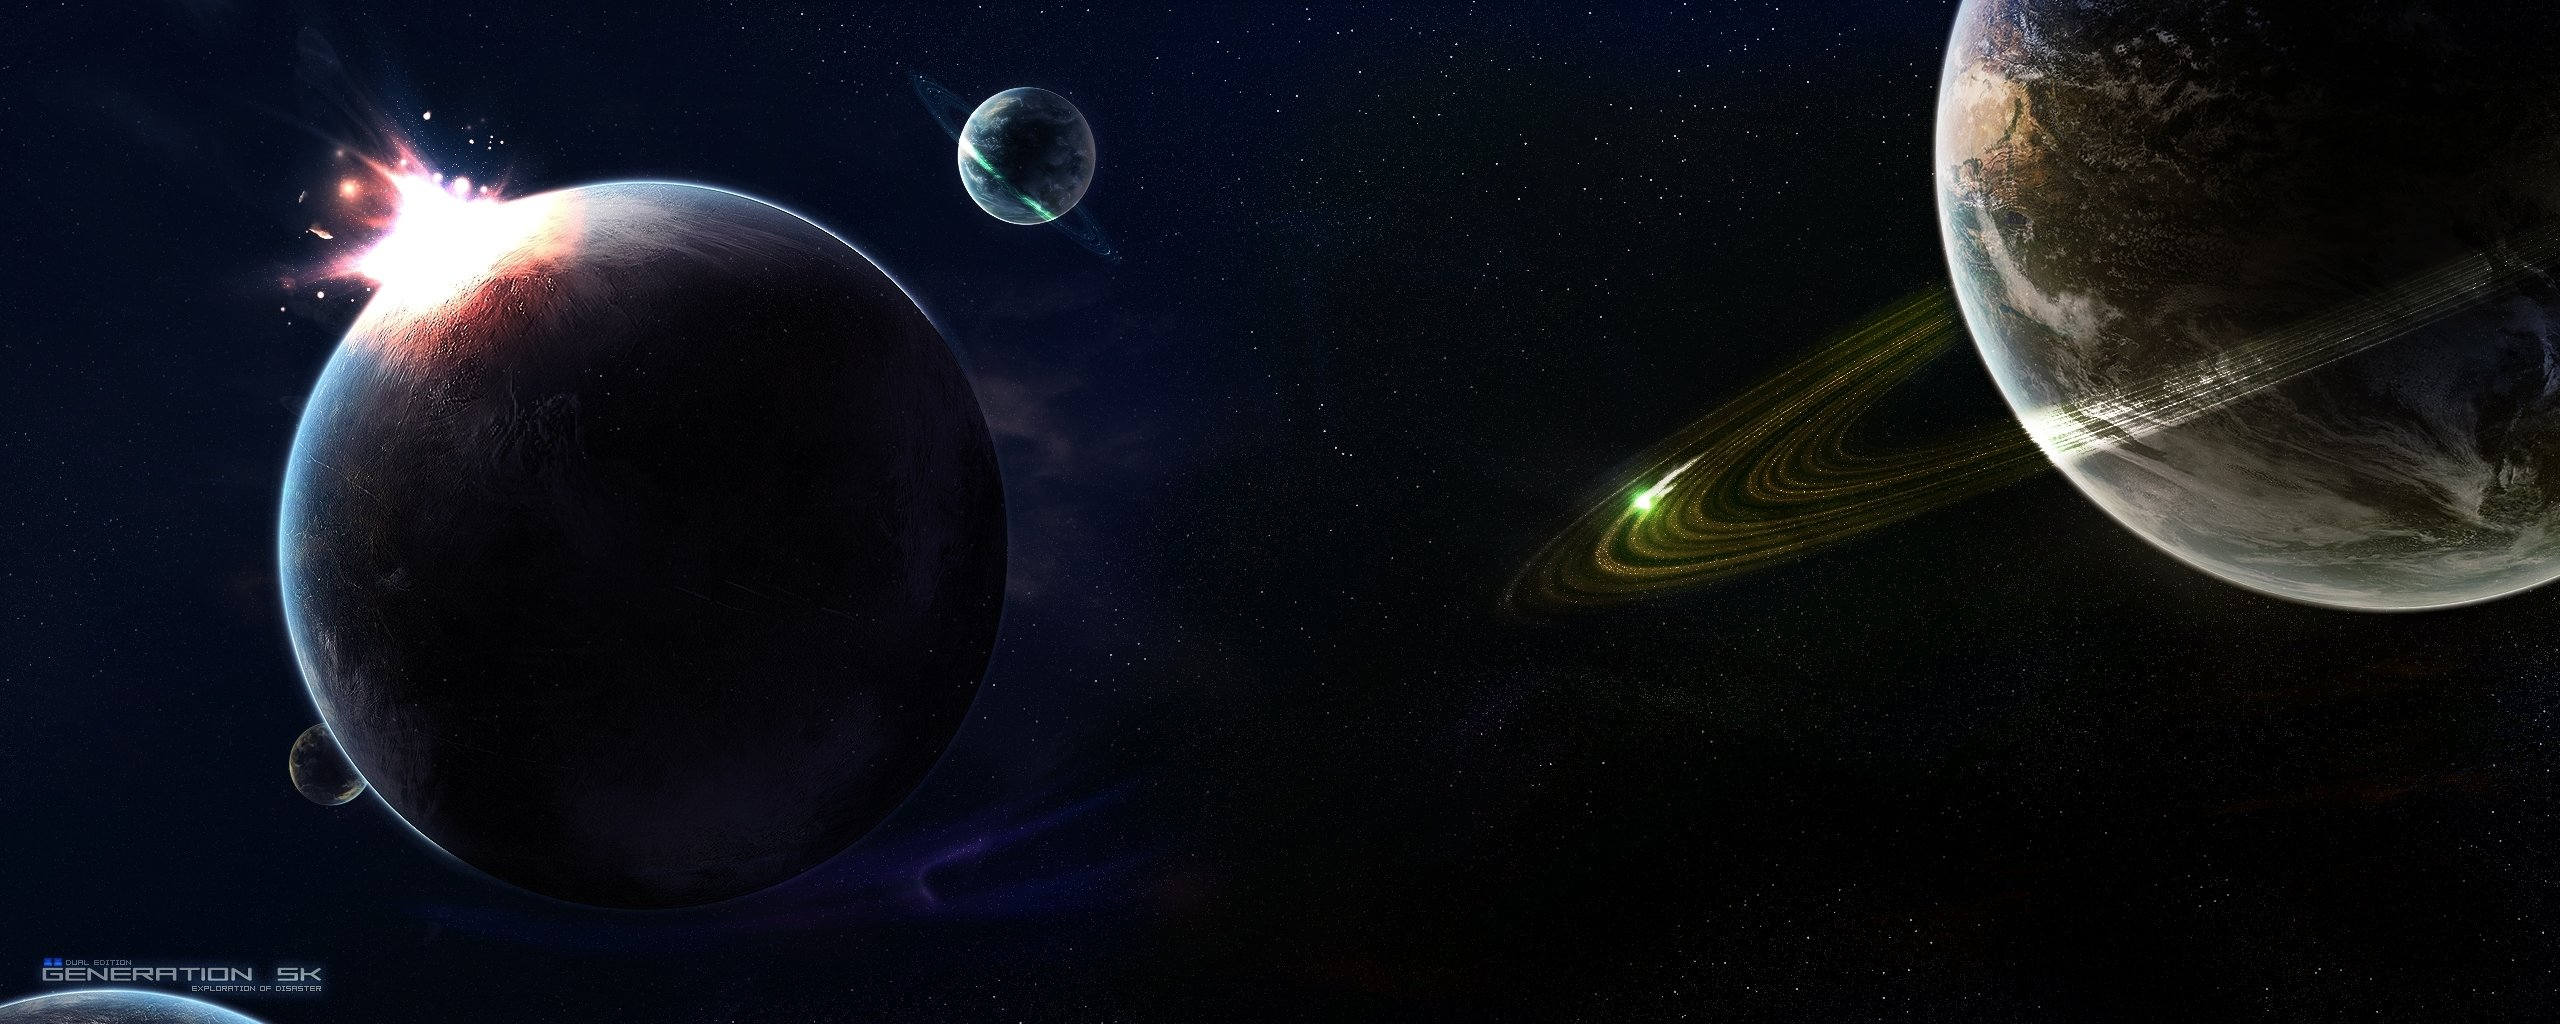 Download dual monitor 2569x1024 Planets PC wallpaper ID:152957 for free